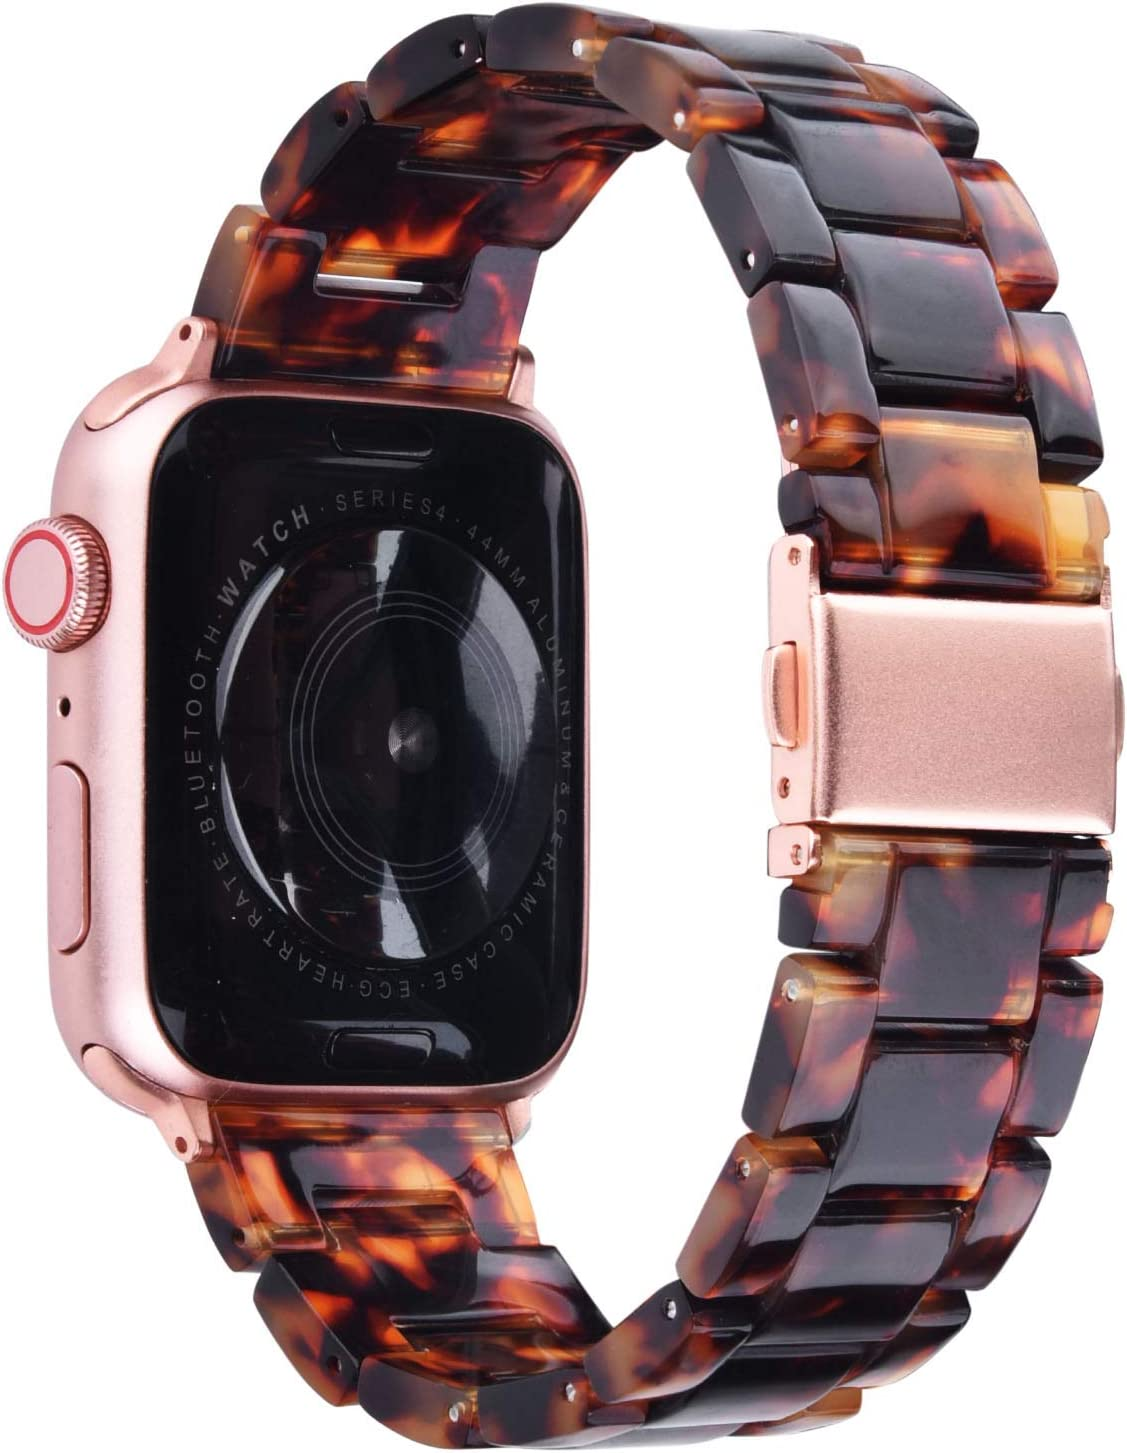 V-MORO Resin Strap Compatible with Apple Watch Band 38mm 40mm Series 5/4/3/2/1 Women Men with Stainless Steel Buckle, Apple iWatch Replacement Wristband Bracelet(Tortoiseshell, 38mm/40mm)